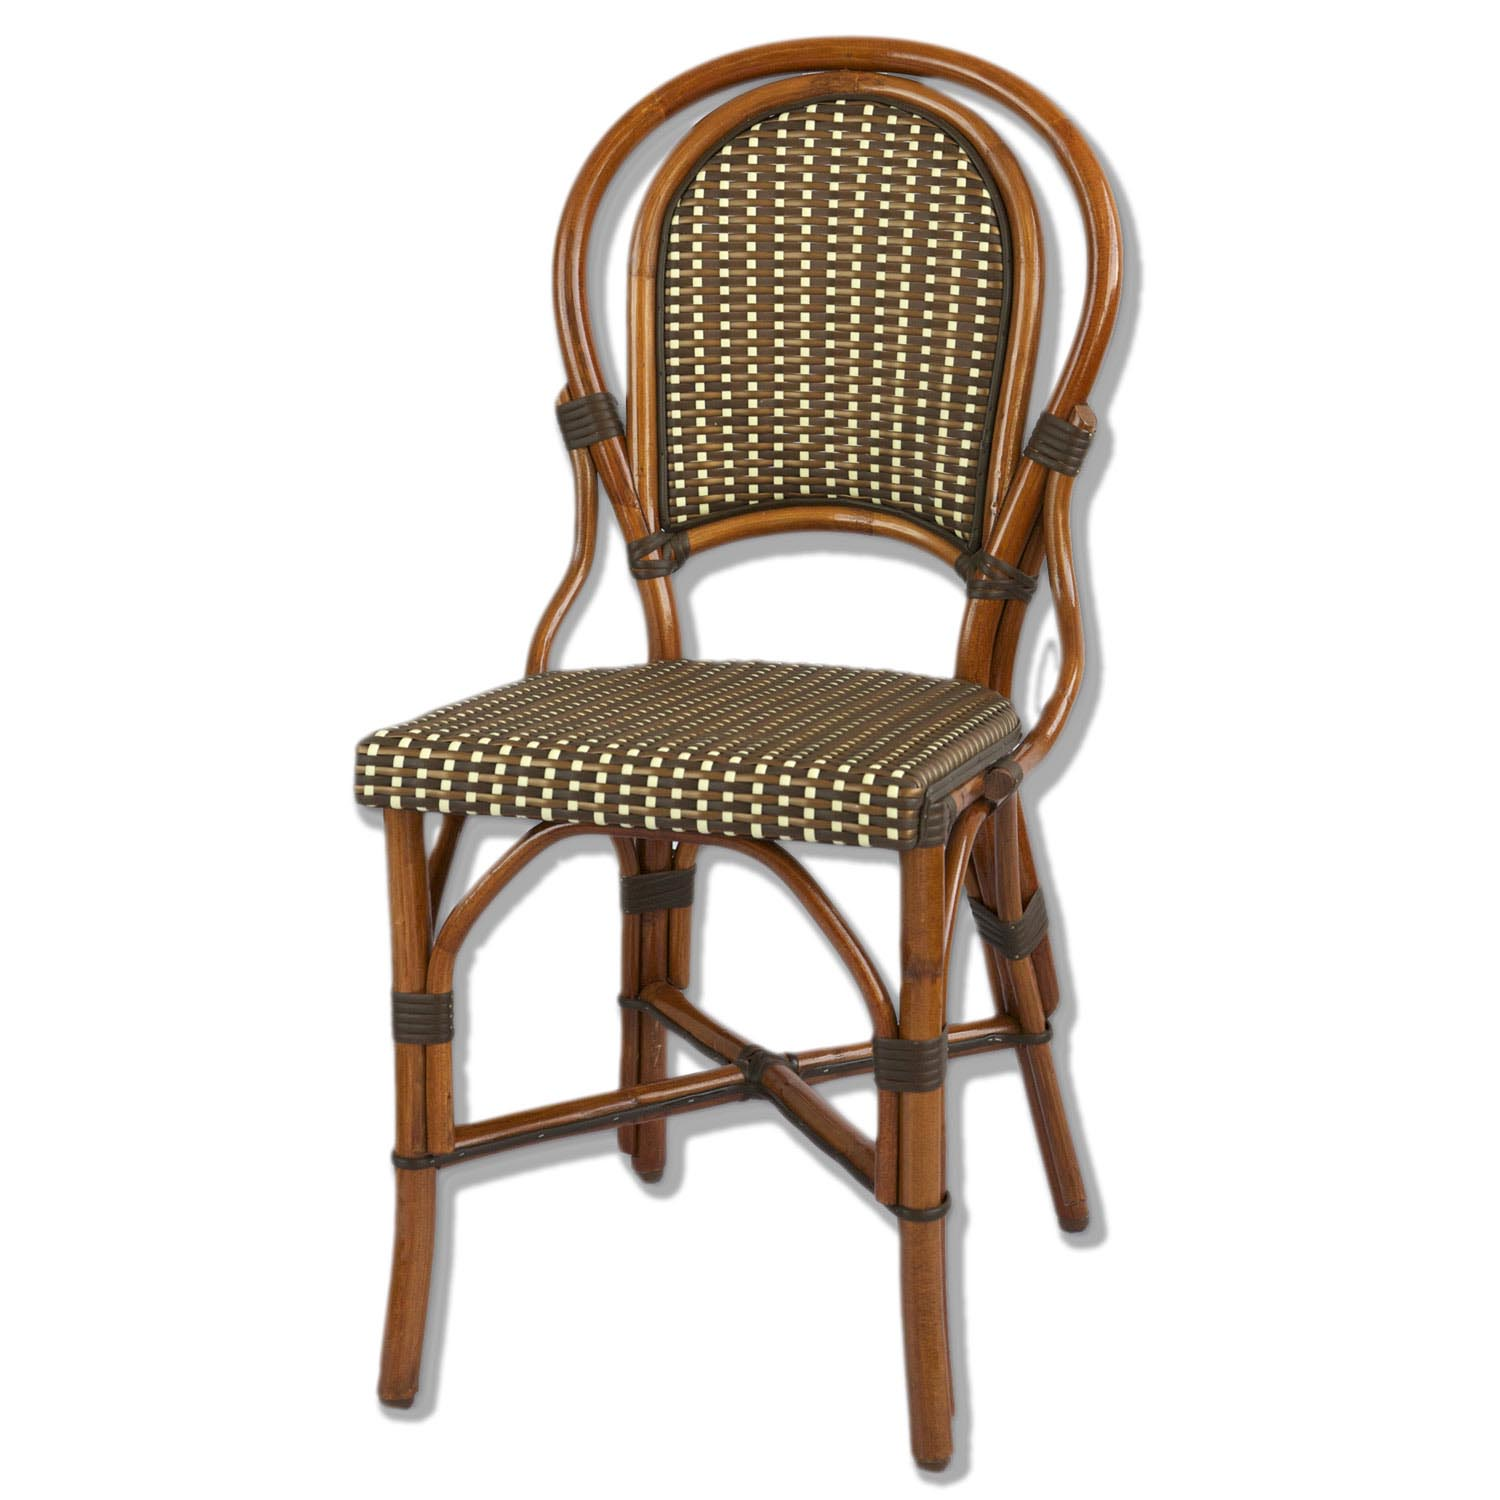 french rattan bistro chairs biokinesis chair exercises for seniors dvd marais ivory brown bronze american country